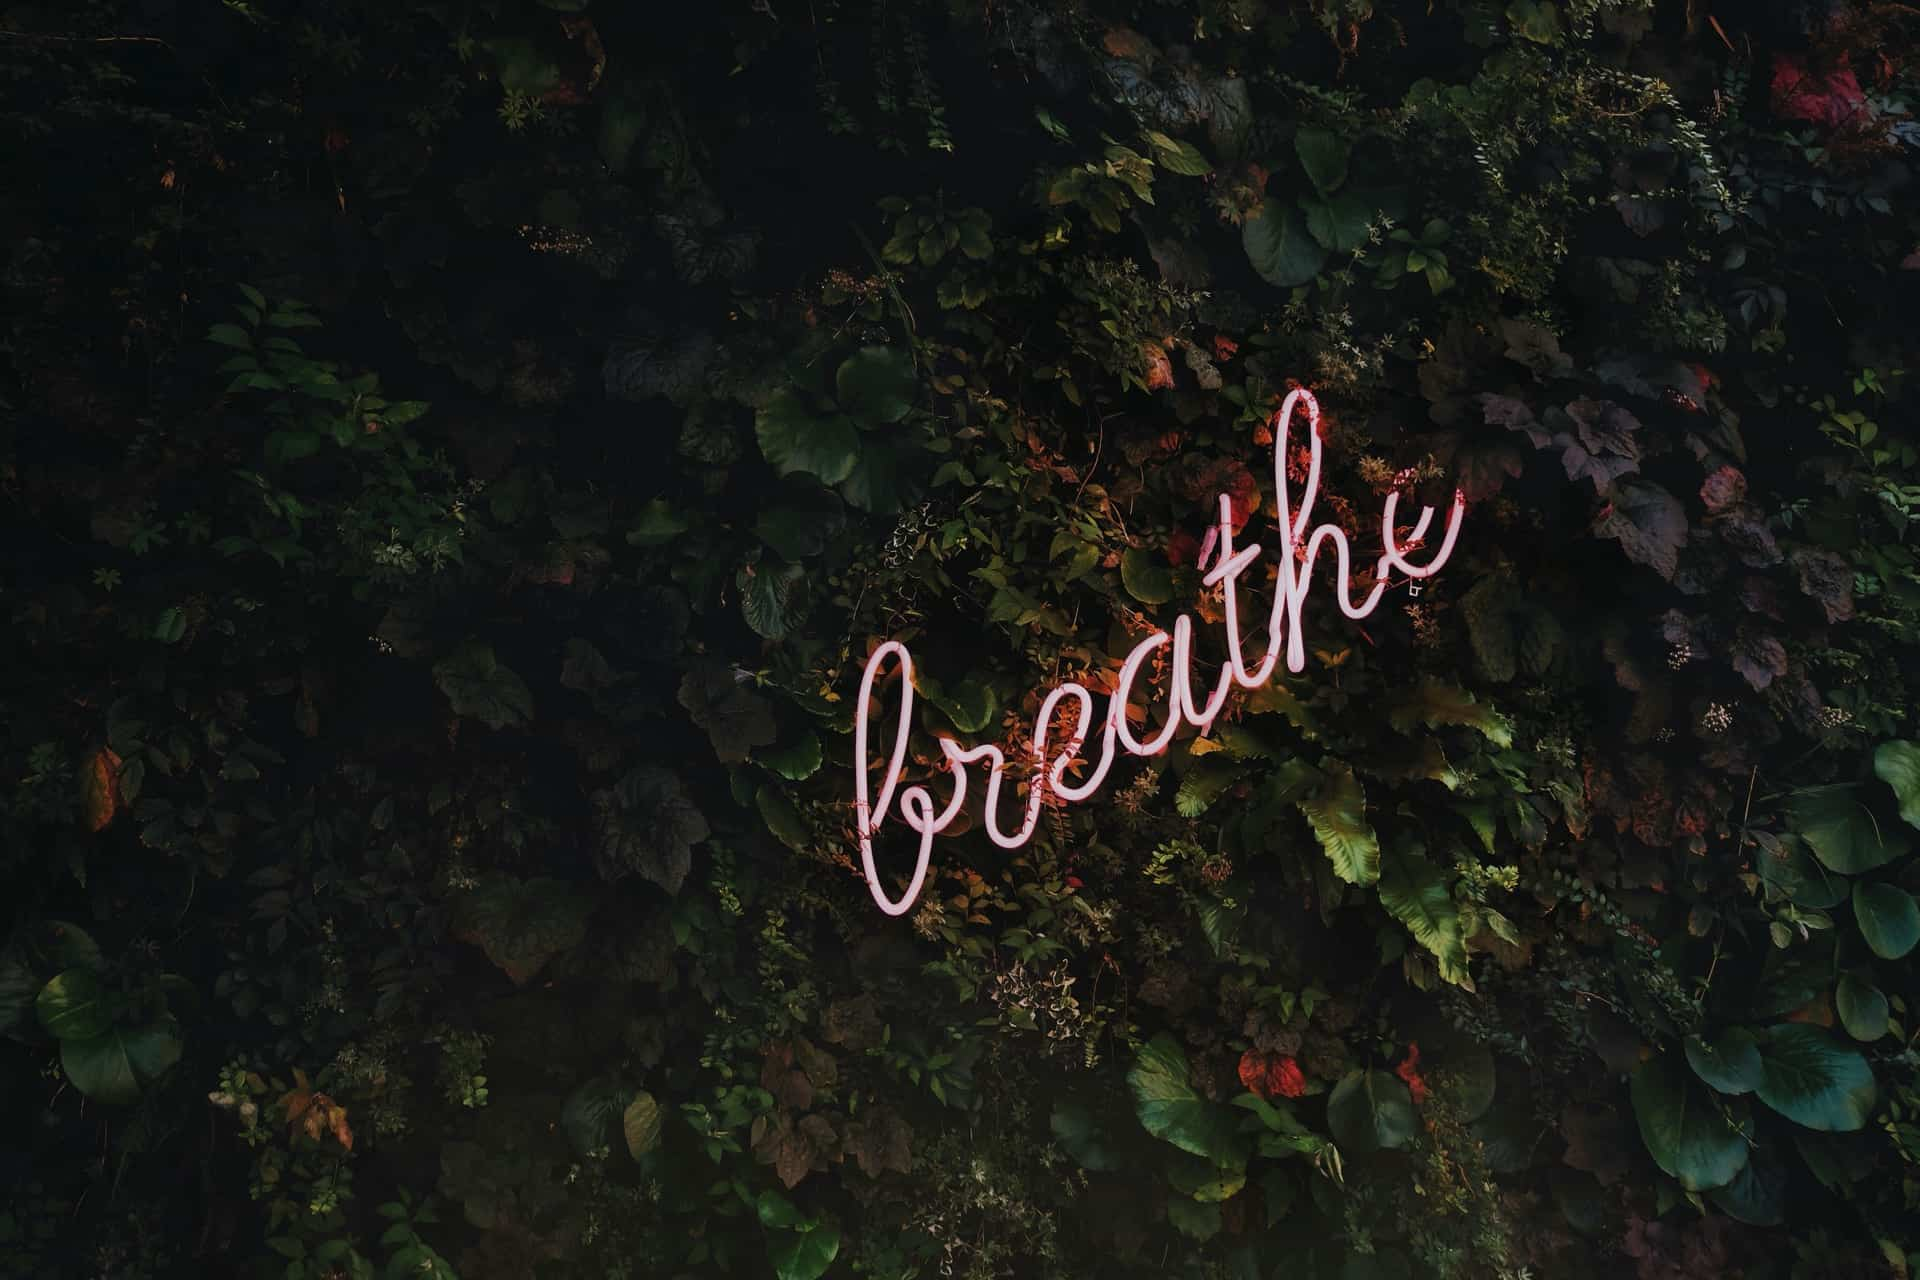 tim goedhart vnpTRdmtQ30 unsplash - 5 ways to relax and reconnect with yourself during quarantine